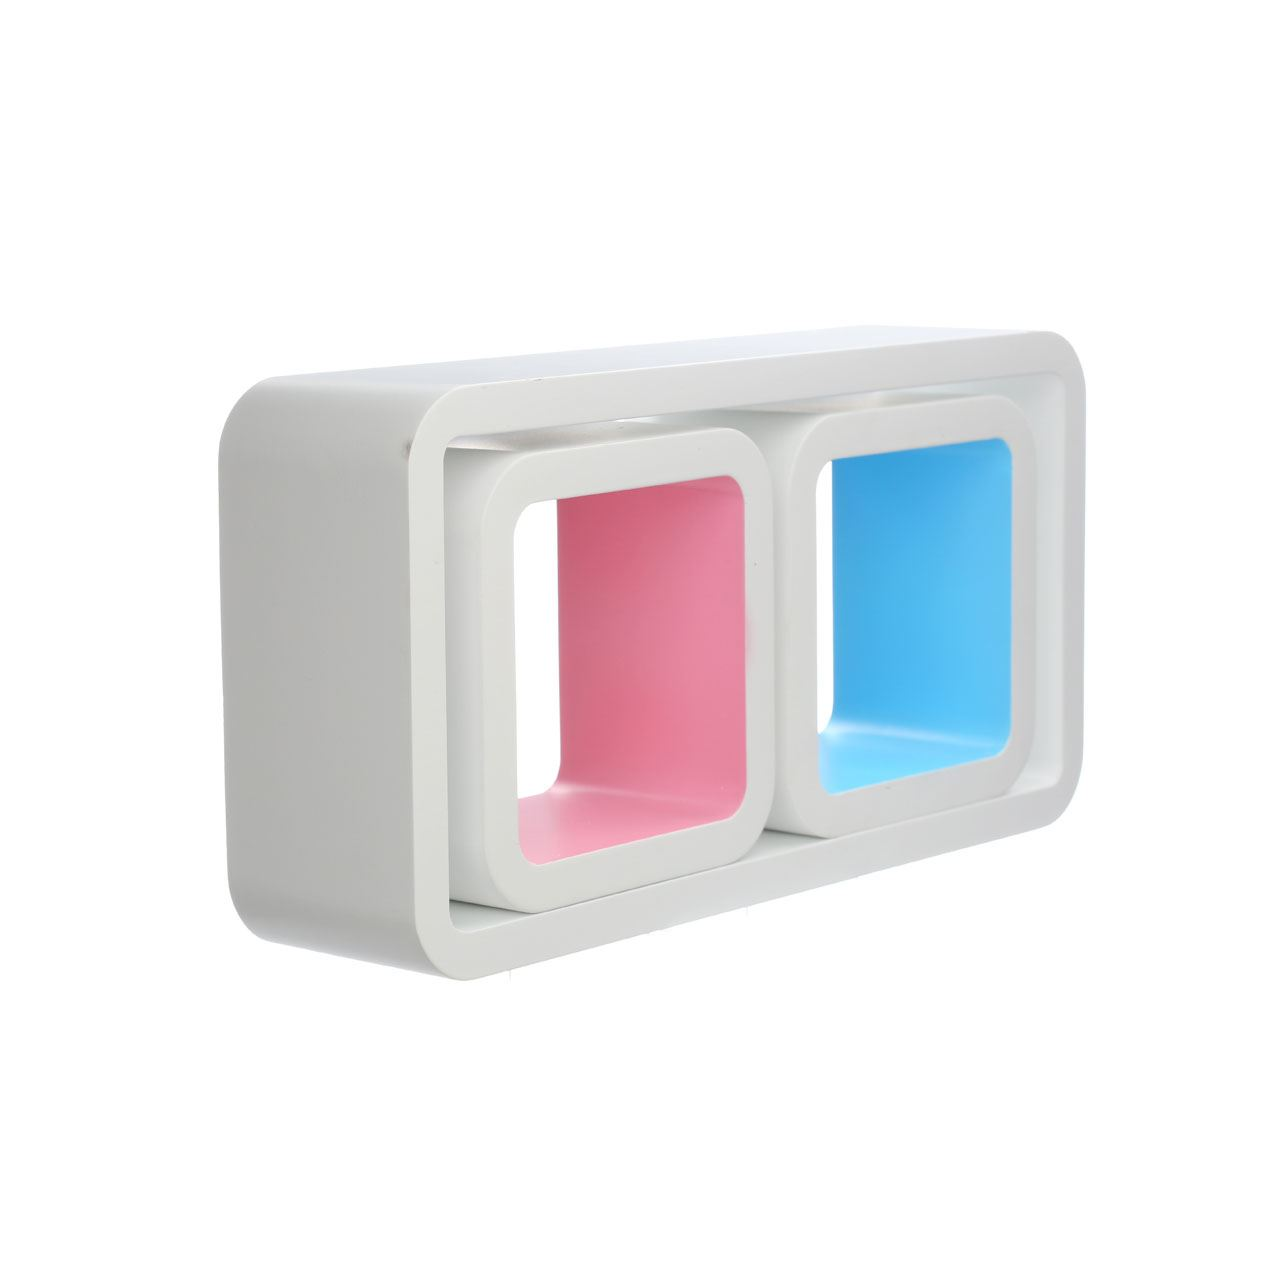 Details About Set Of 3 Wall Cubes Rectangle Square Mdf Wall Mounted Shelving Unit In 3 Colours